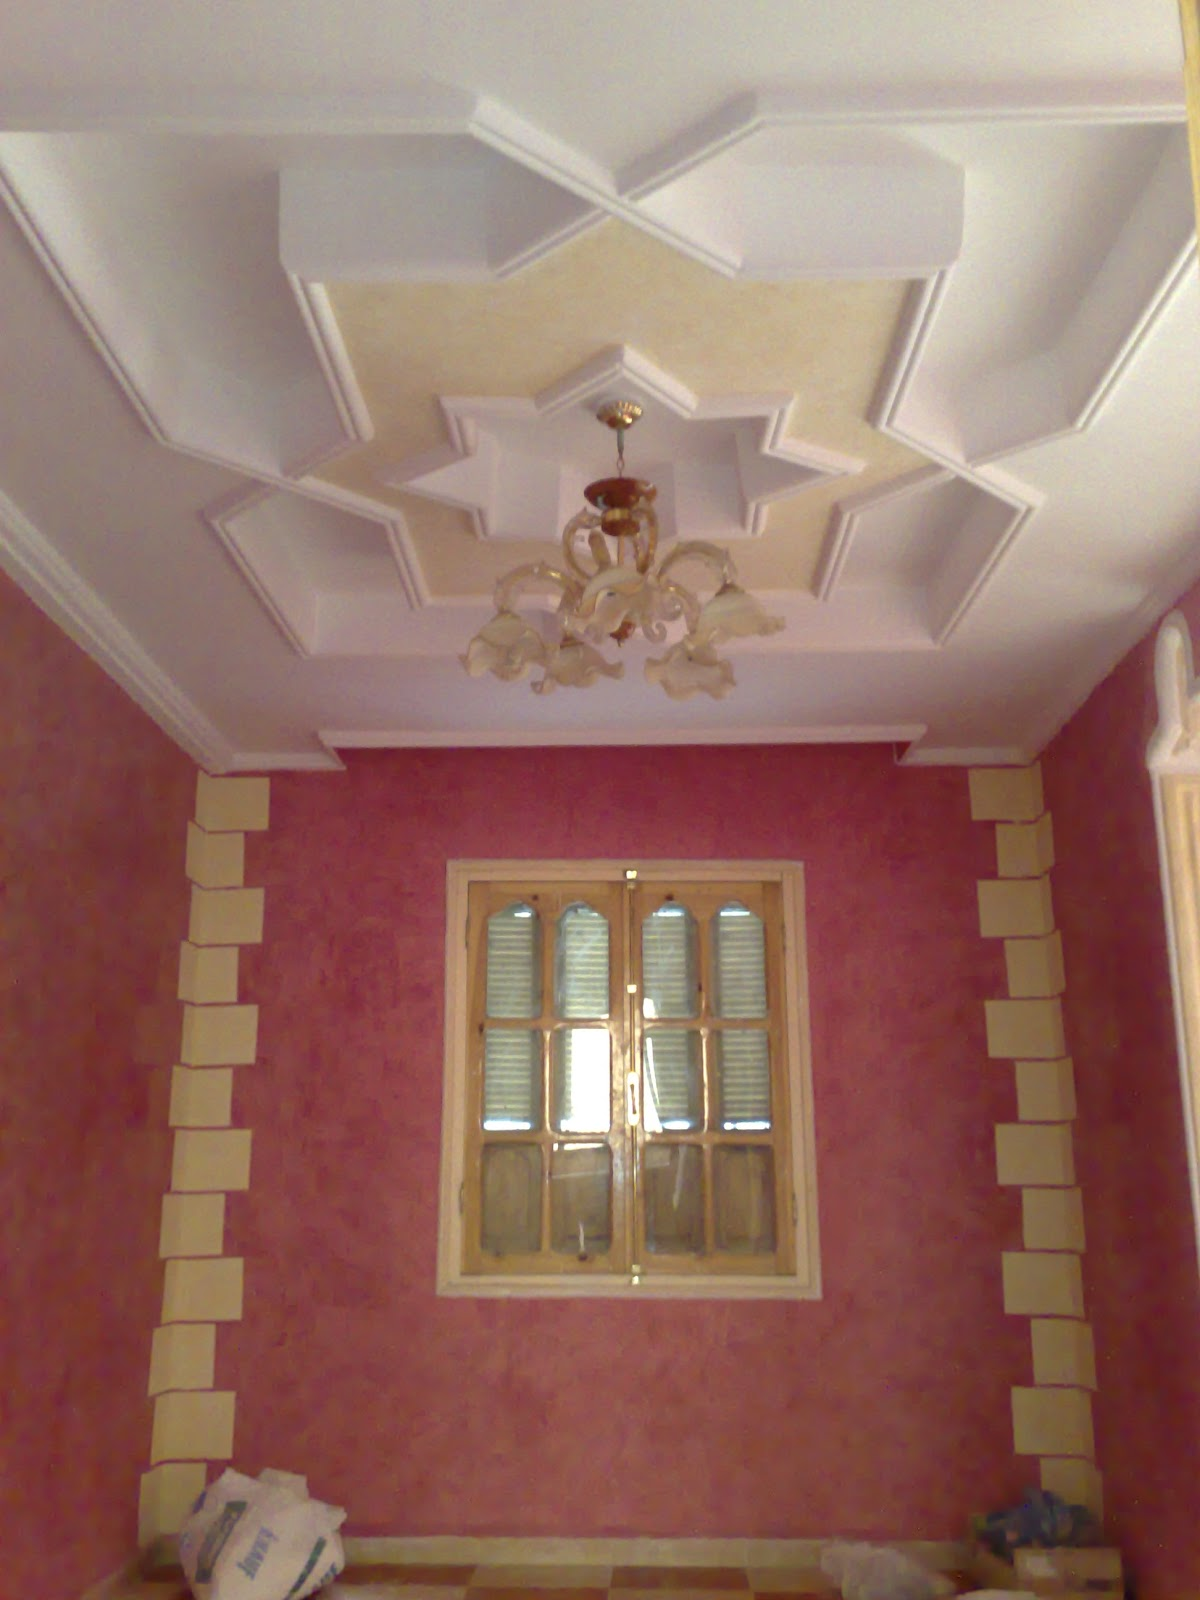 Decoration des plafonds en platre cool decoration plafond for Platre plafond moderne